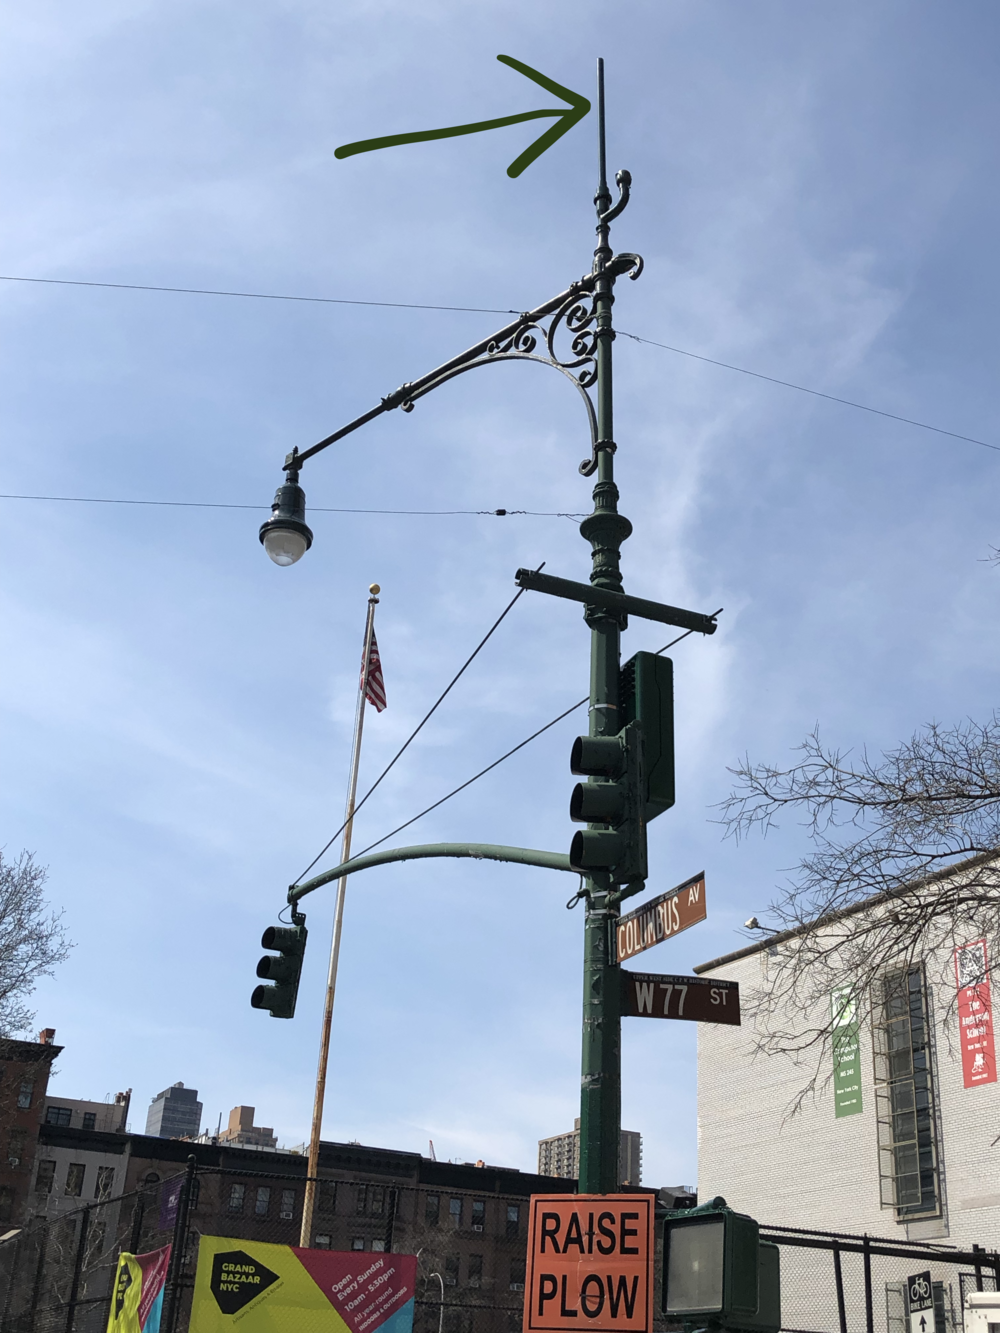 Here you can see the 5G antenna on top of the light pole emitting over an elementary and middle school playground on the upper west side of NYC, the American flag on the playground property, and the prestigious Anderson School and the Computer School to the right. Our young children are now the experiment.  It's time to revisit the Telecom Act of 1996.